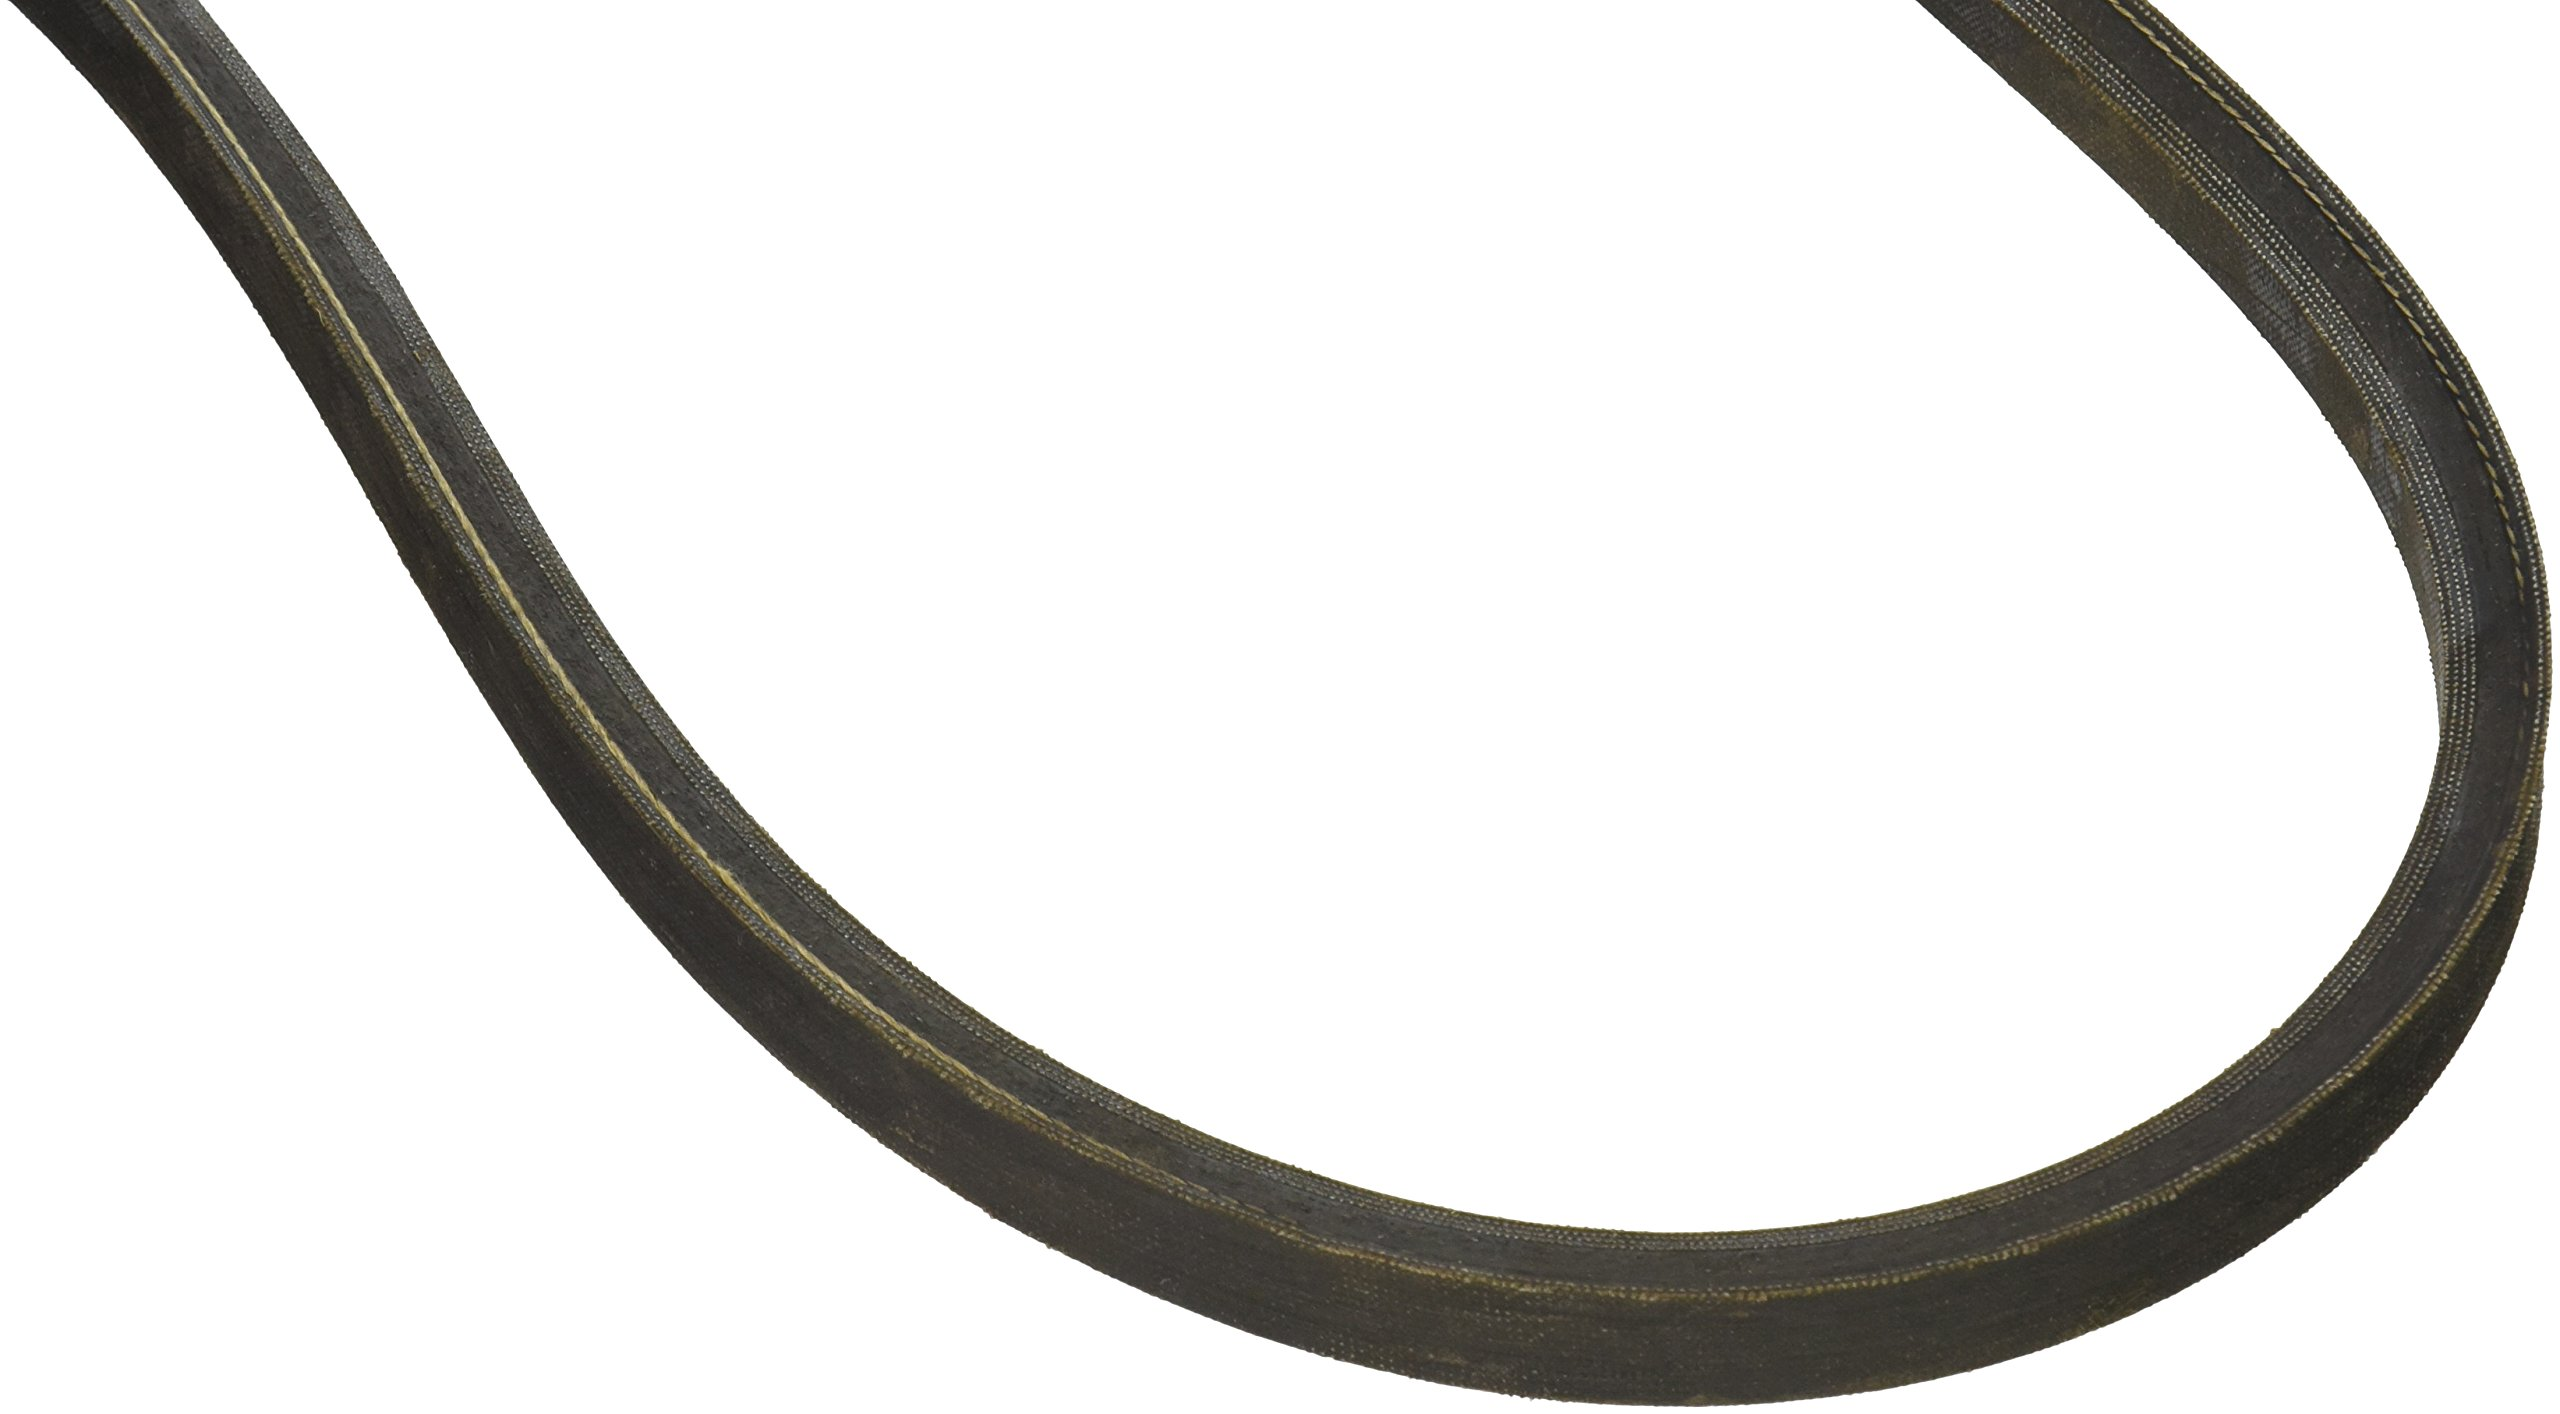 Stens 265-146 Belt Replaces Scag 481558 140-Inch by-5/8-inch